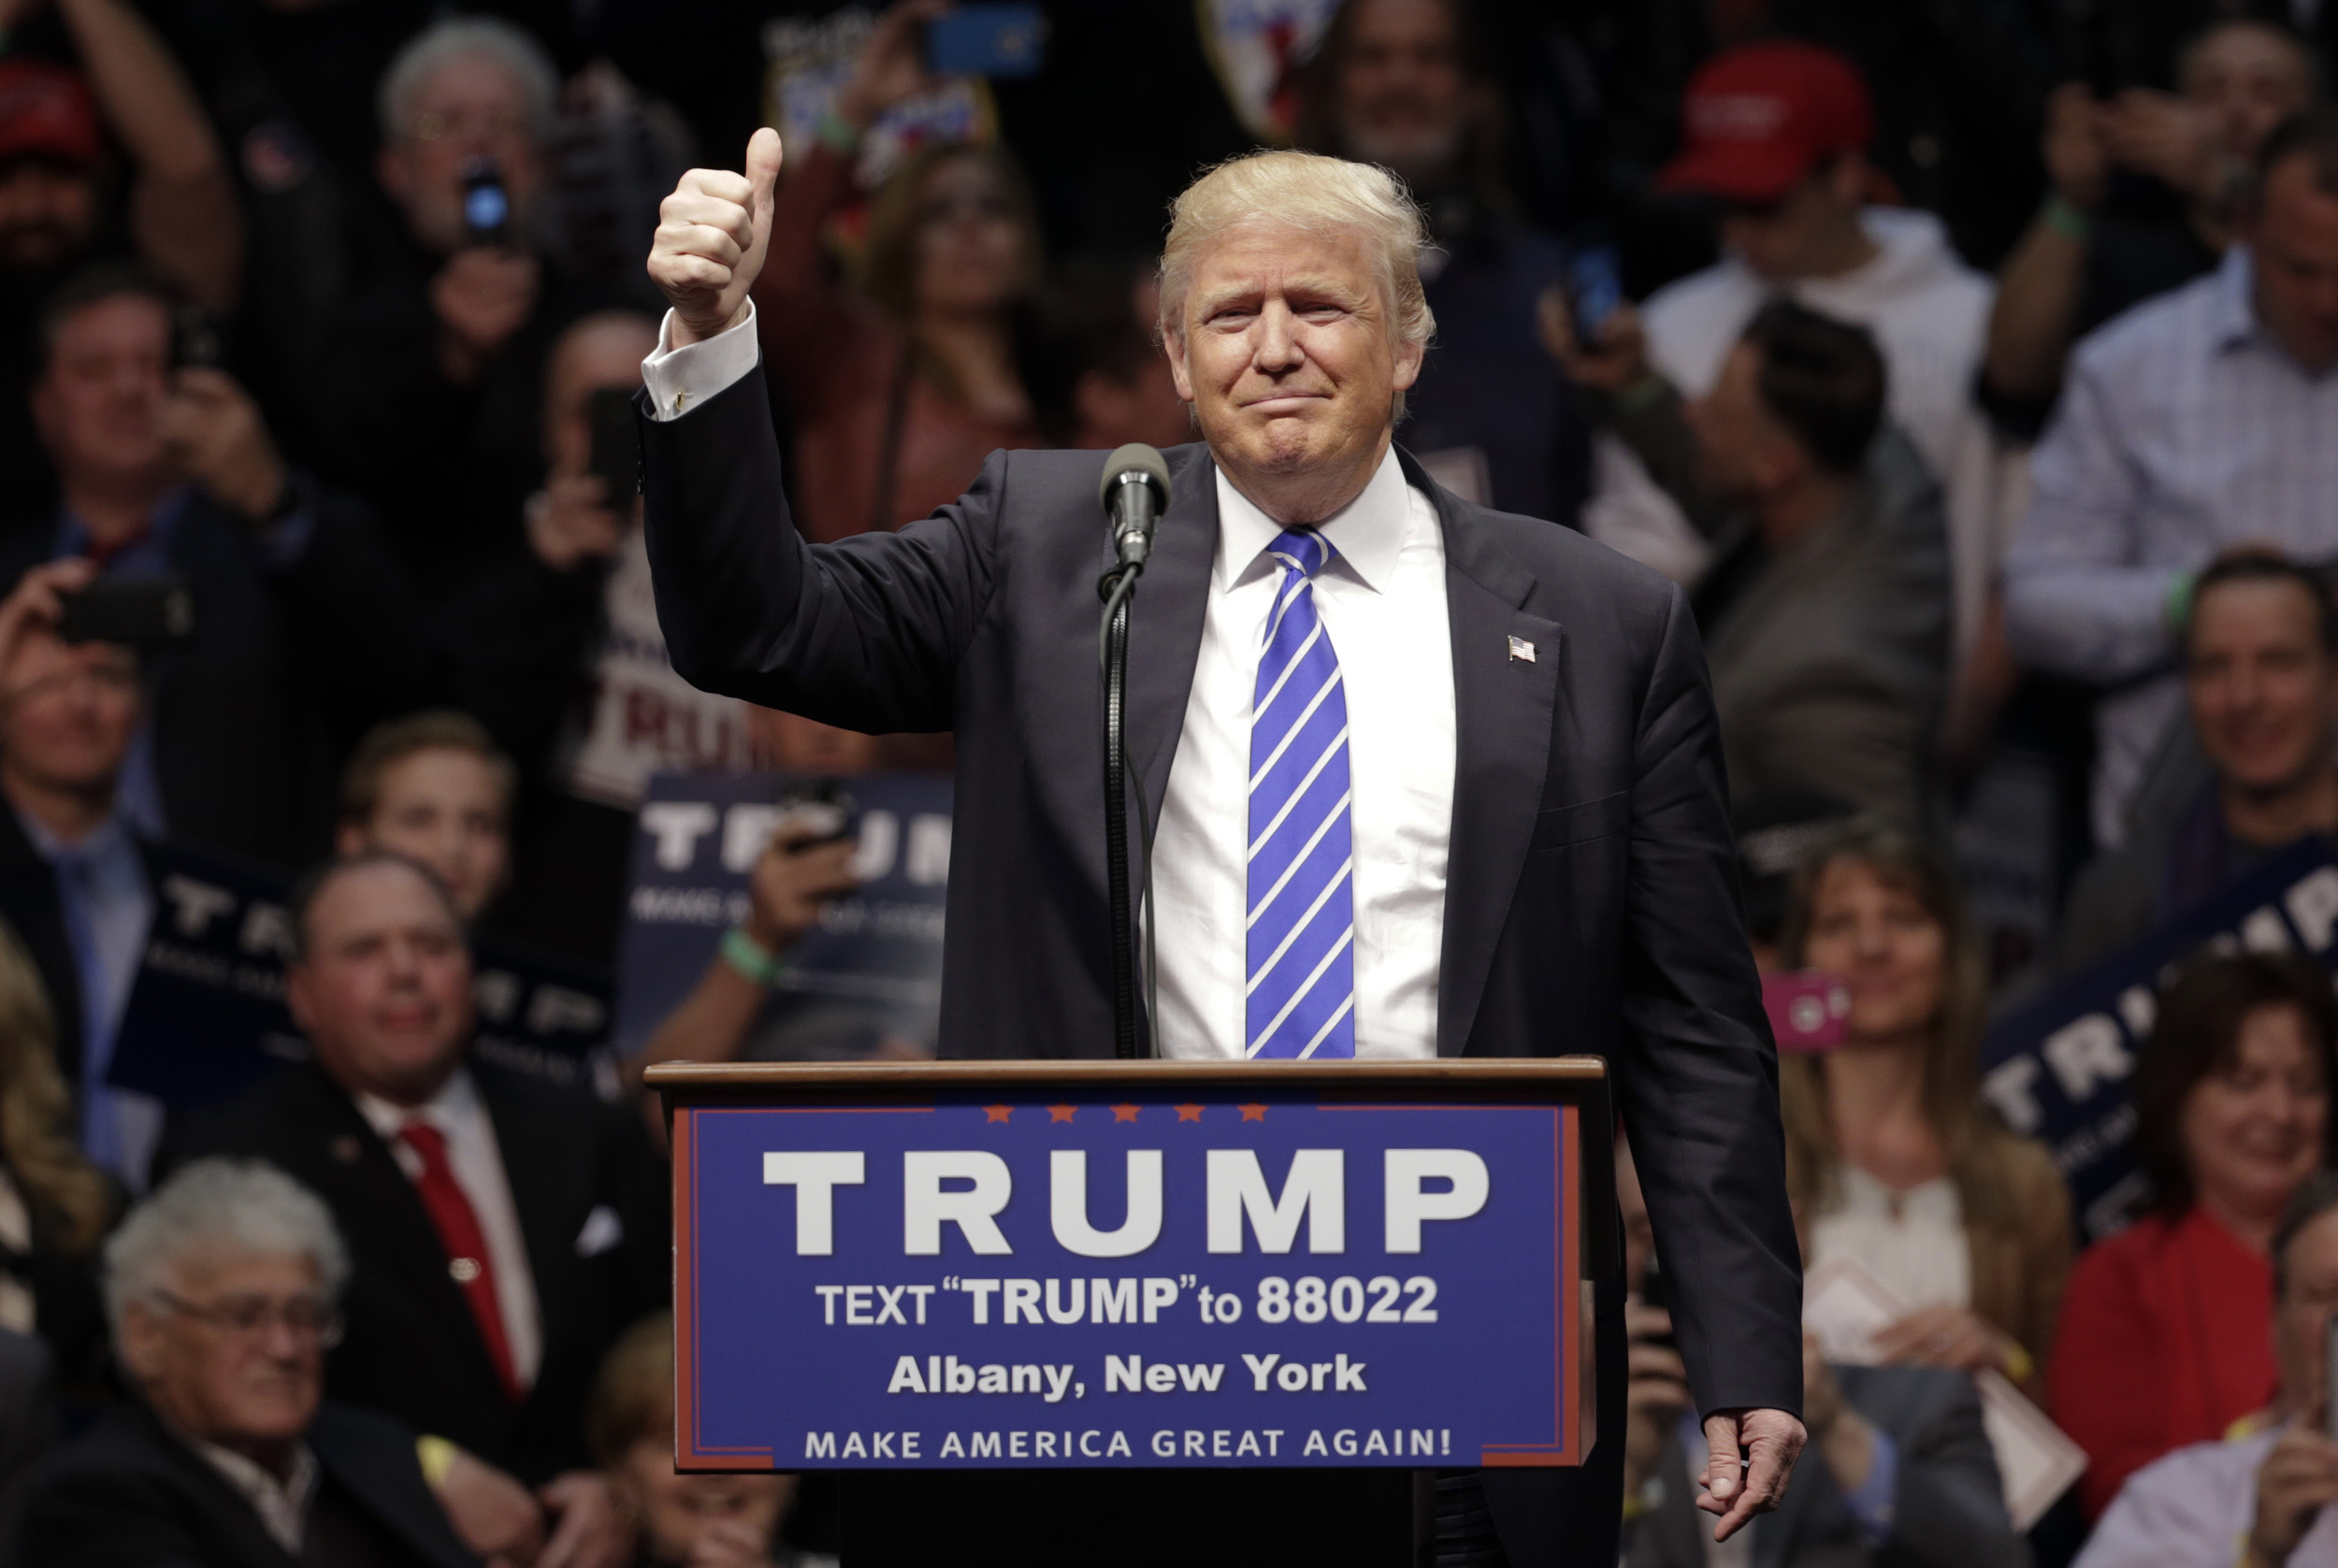 Republican presidential candidate Donald Trump acknowledges the crown during a rally at the Times Union Center on Monday, April 11, 2016, in Albany, N.Y. (AP Photo/Mike Groll)